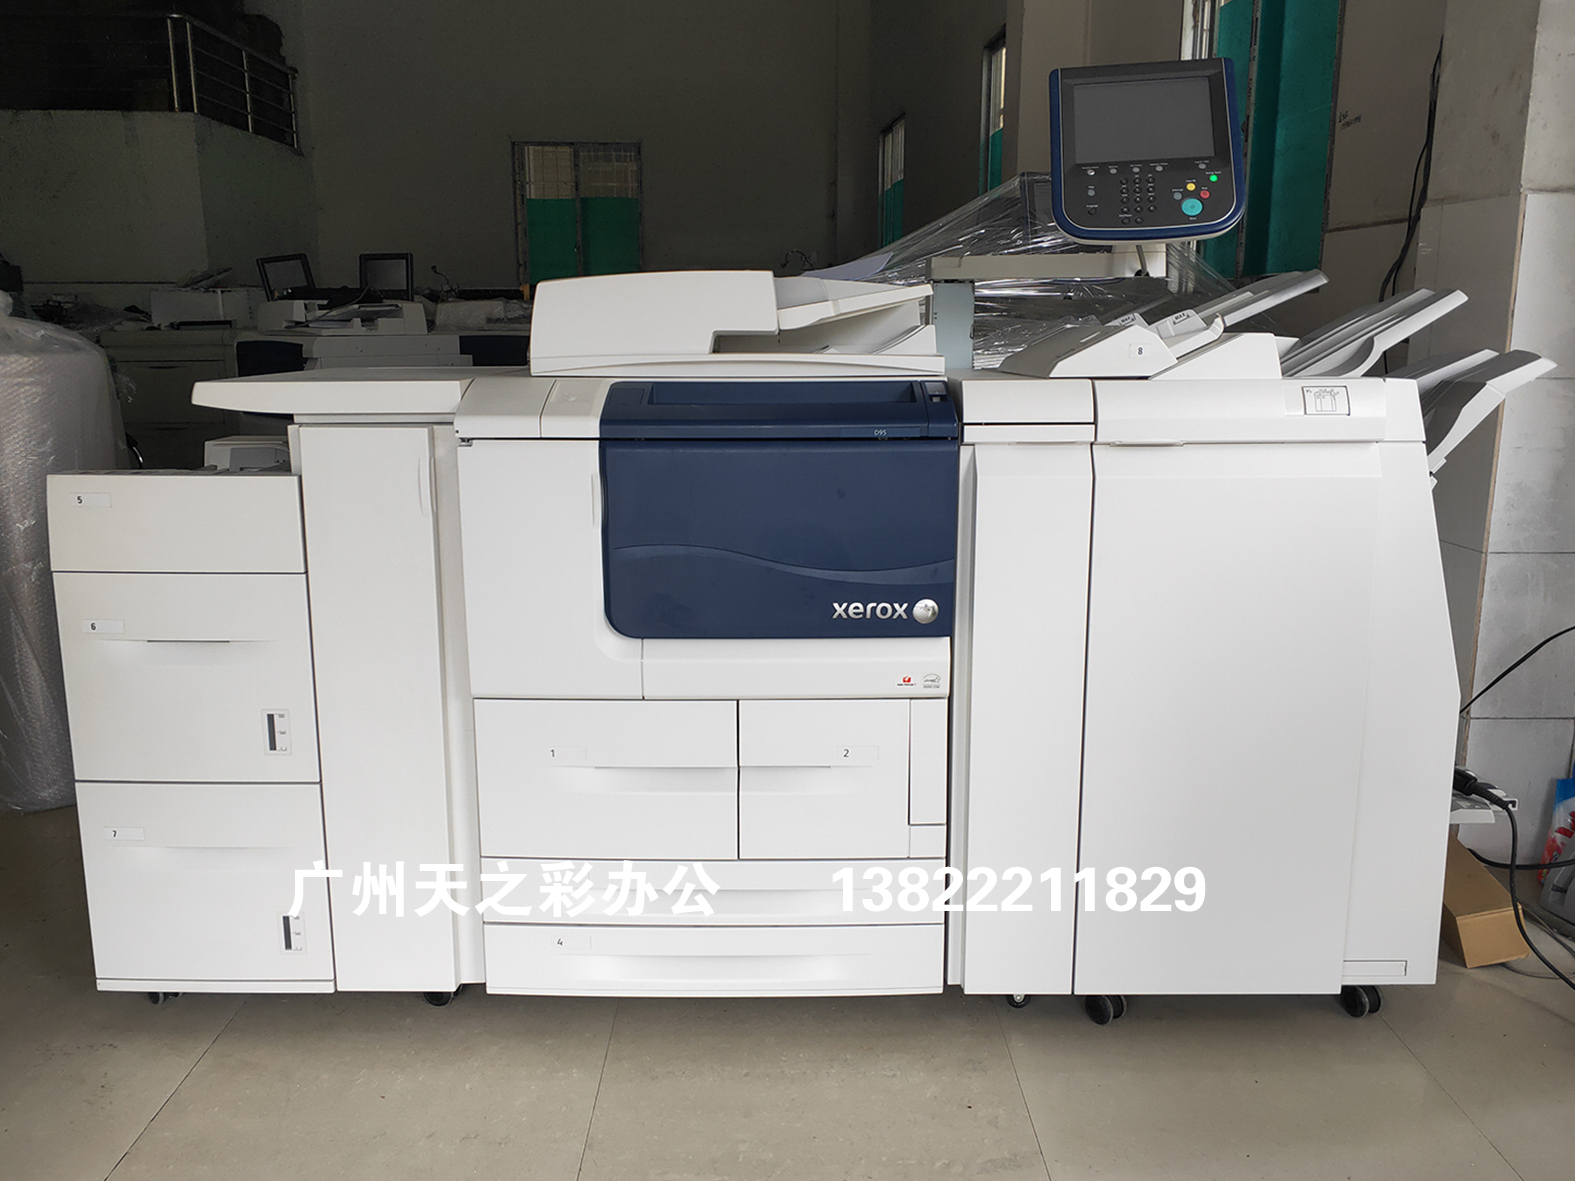 Xerox d95 D110 D125 D136 multifunction black and white high speed digital copier